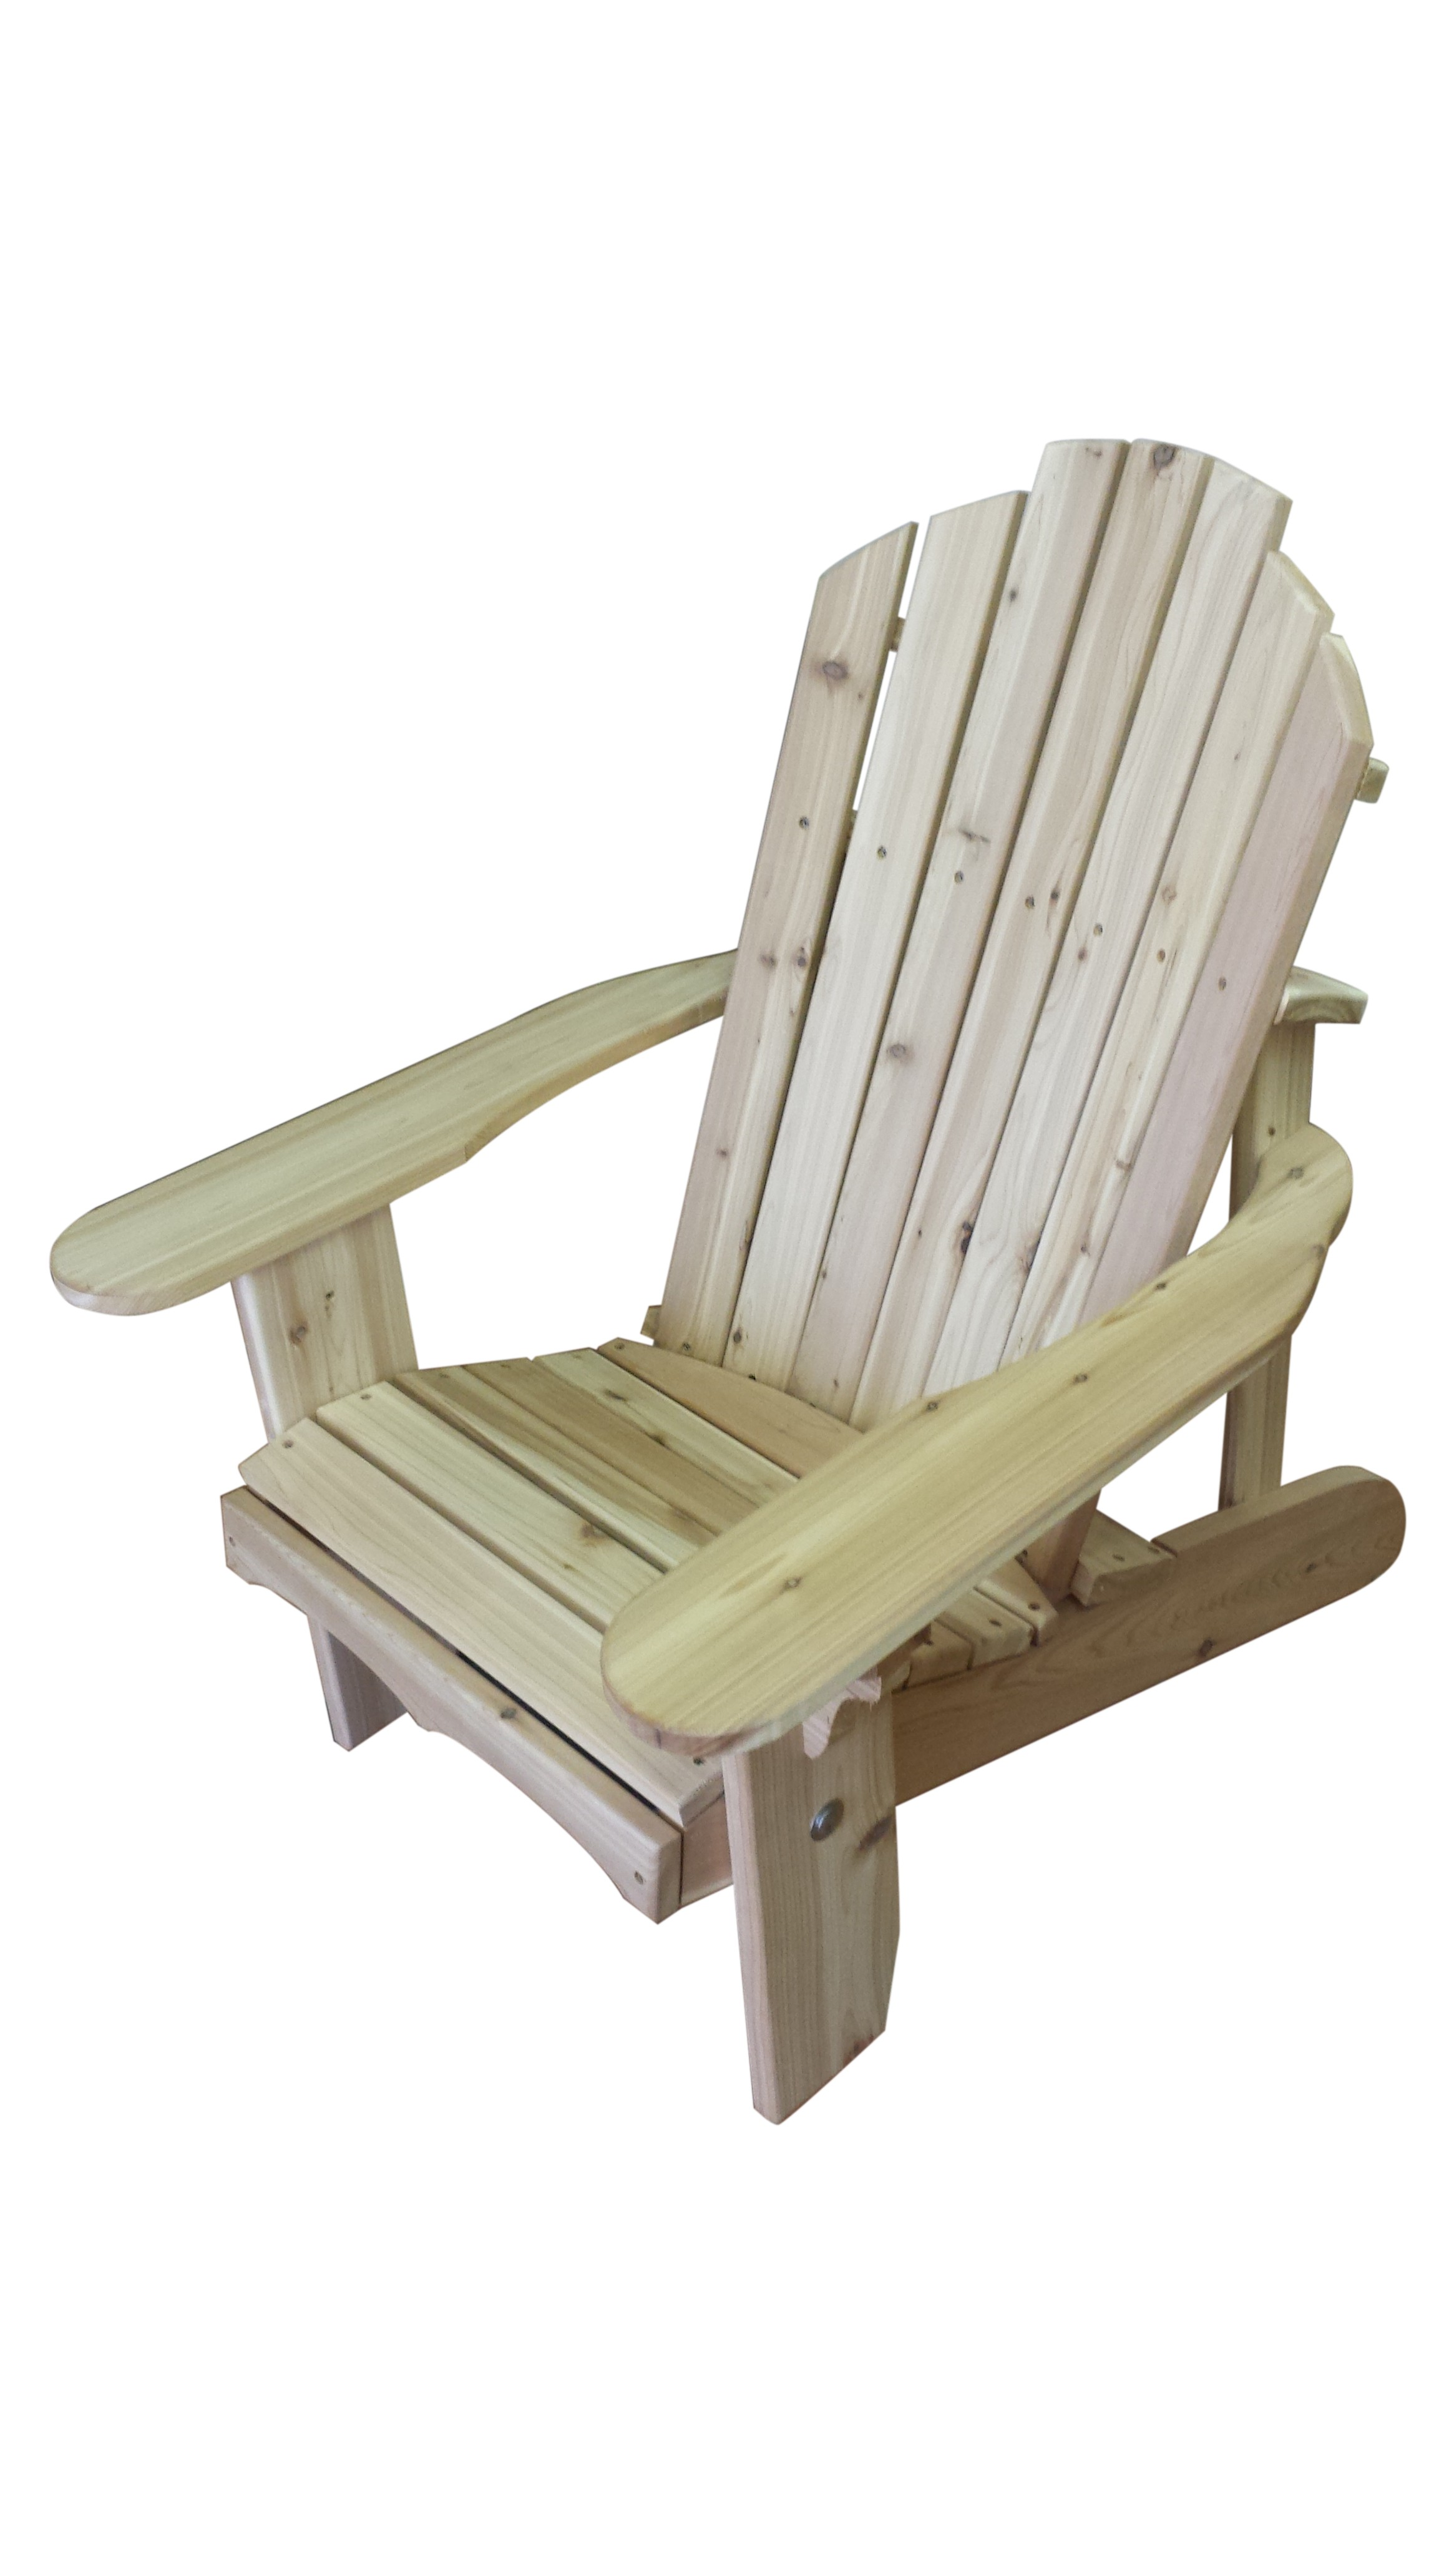 Classic Cedar Adirondack Chair The Rocking Chair Company